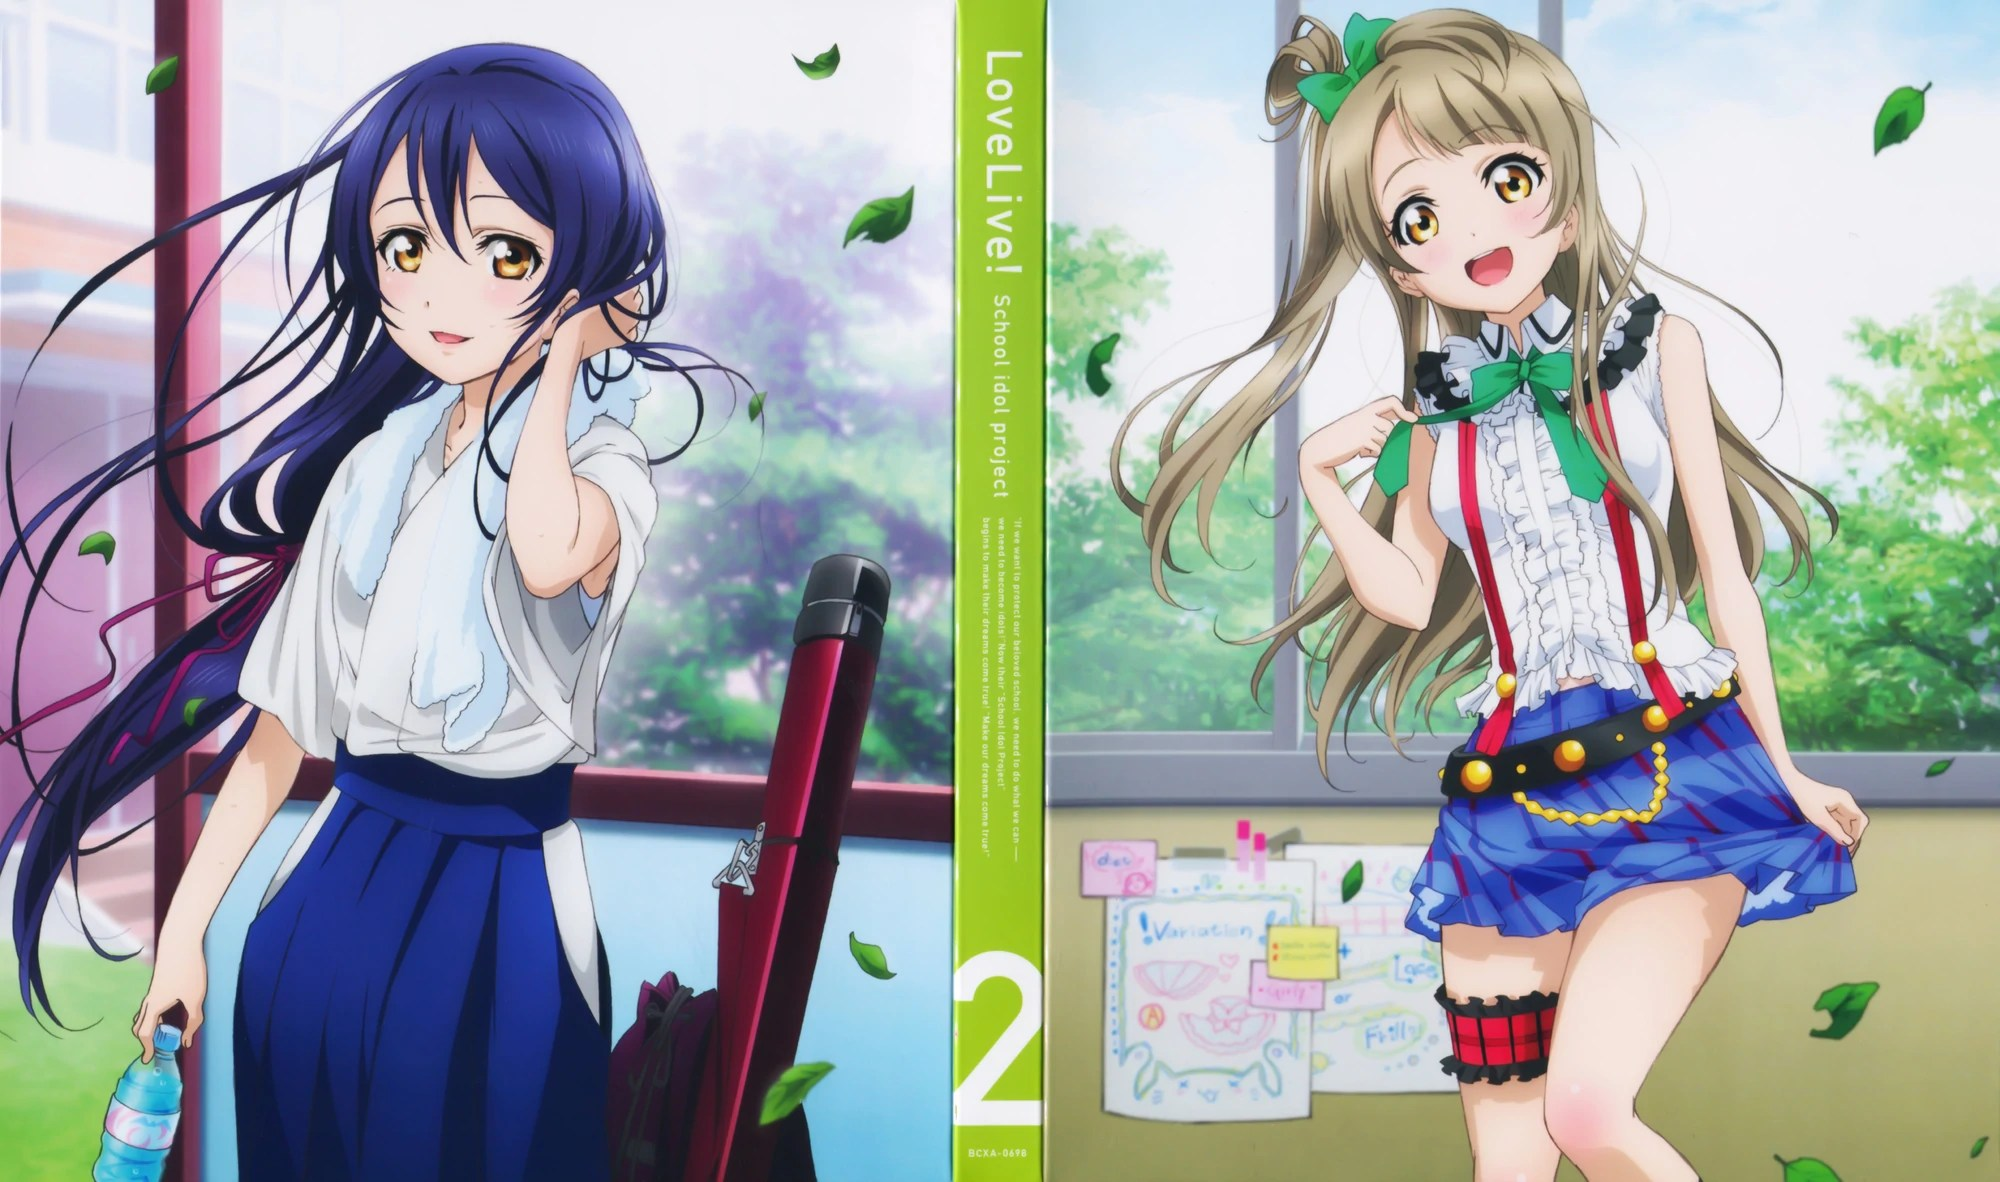 Love Live Umi Wiki - Year of Clean Water